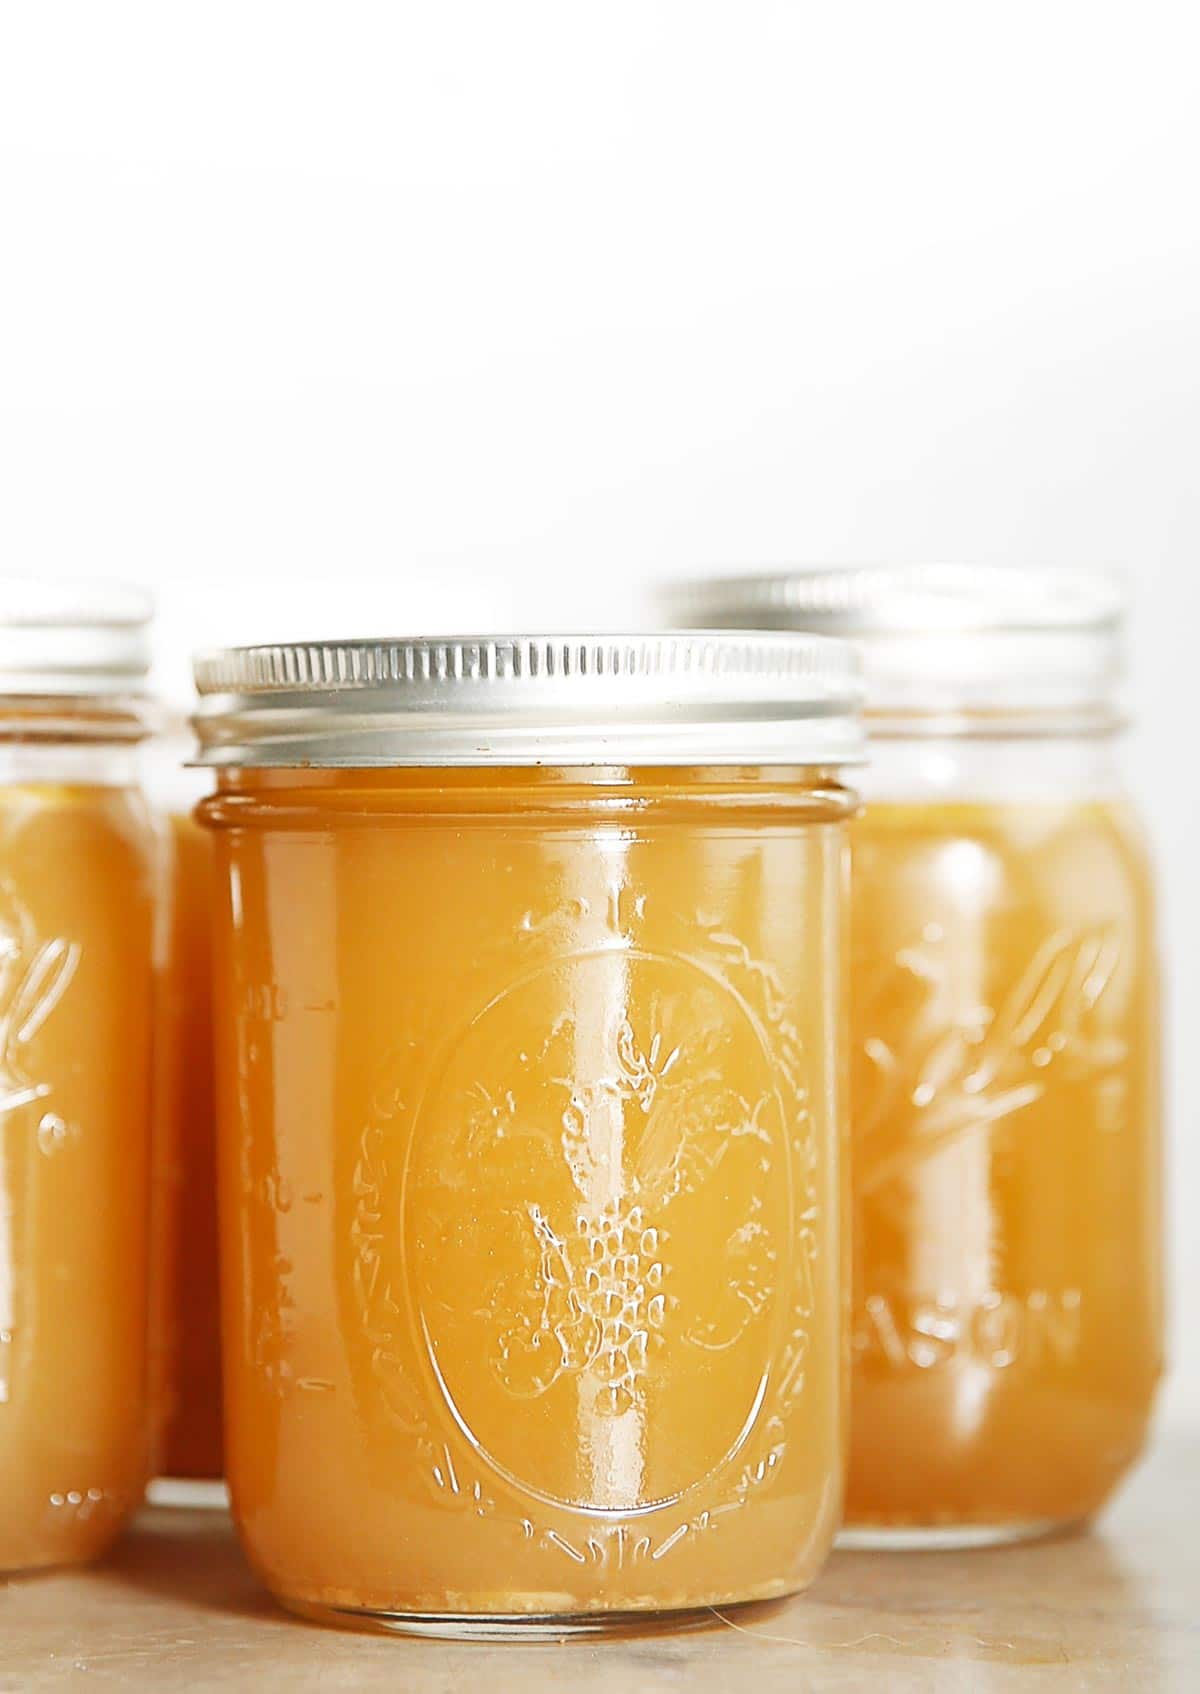 Bone broth made from turkey carcass